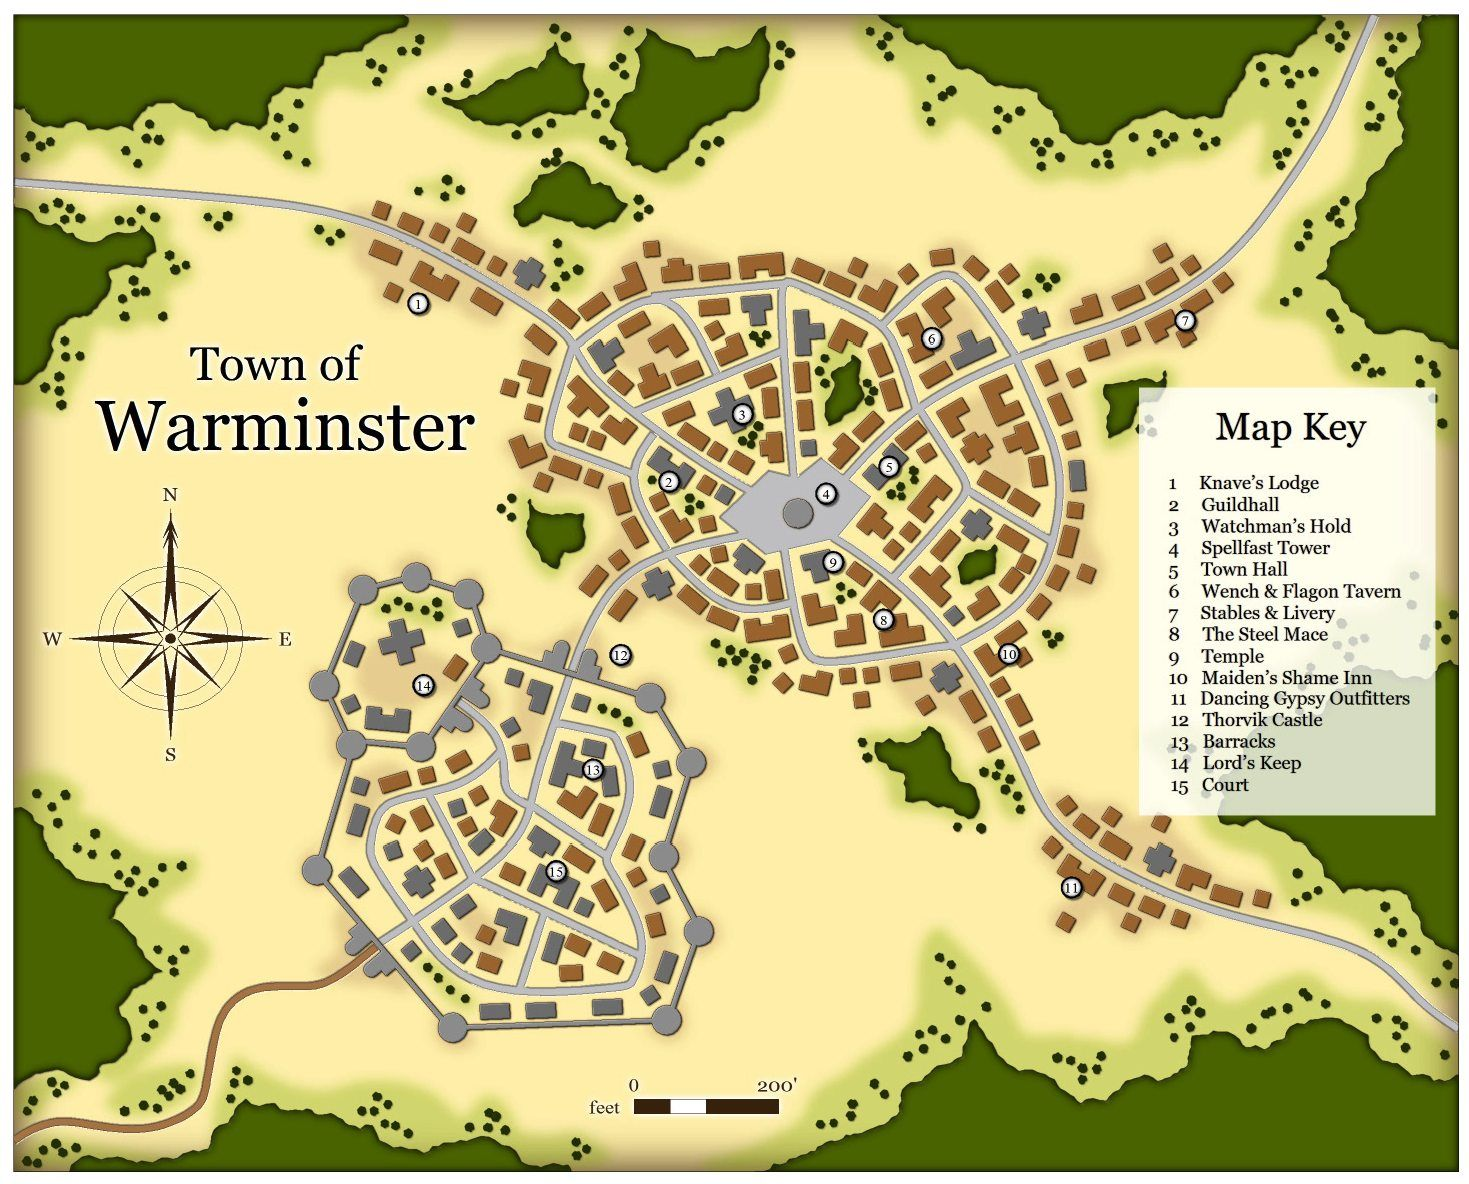 fantasy town maps  Google Search  RPG Maps  Pinterest  Fantasy